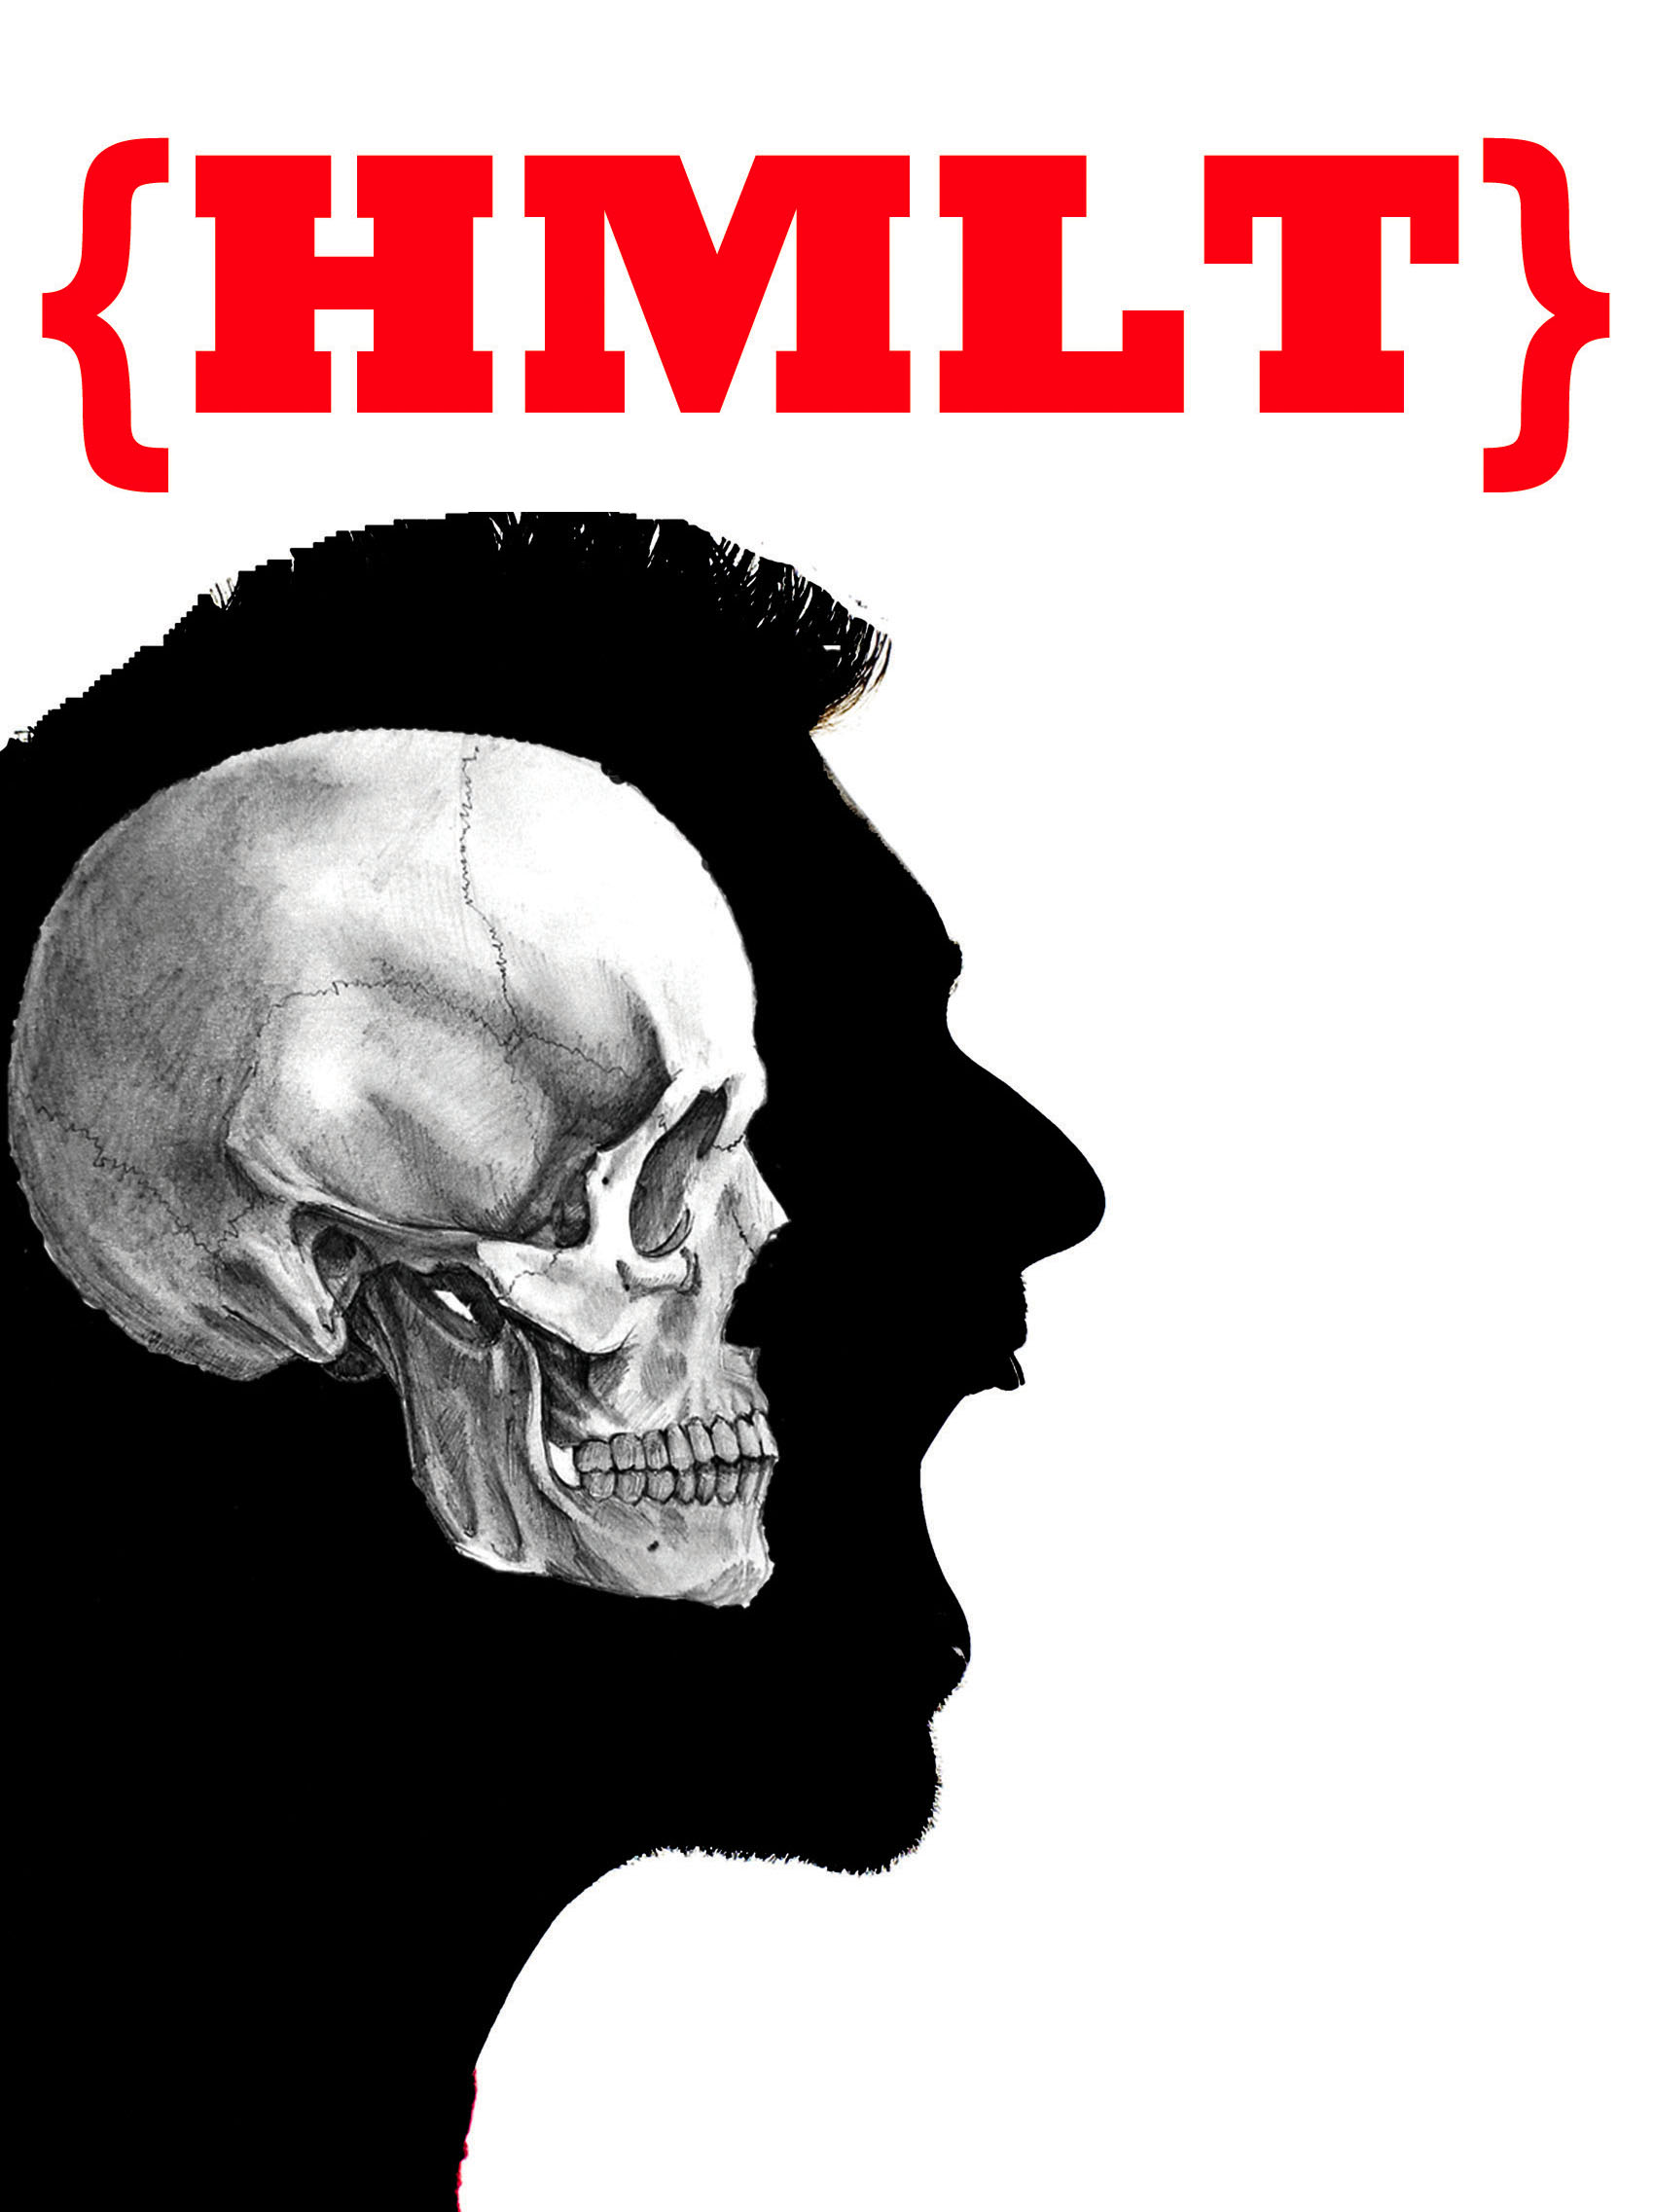 the soliloquies of hamlet in tragedy of hamlet the prince of denmark by william shakespeare Librivox recording of the tragedy of hamlet, prince of denmark by william shakespeare cast: claudius, king of denmark -- michael sirois gertrude, queen of.